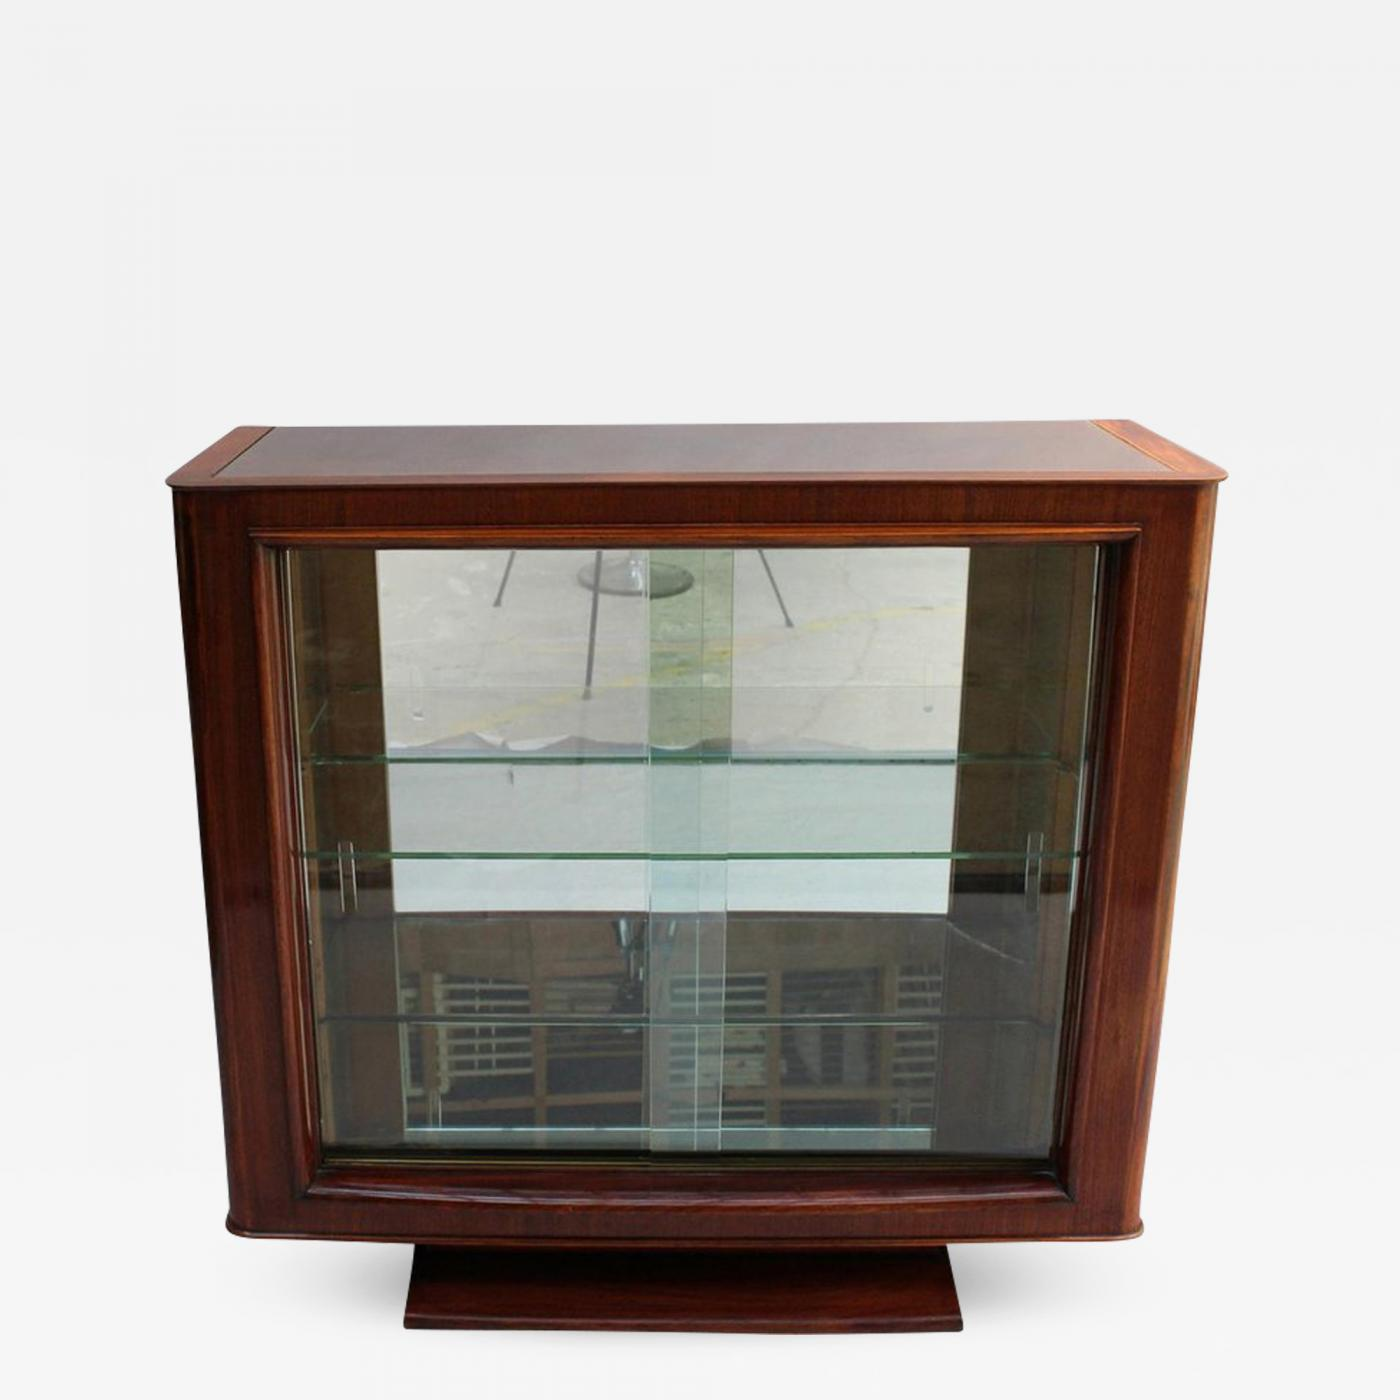 Sideboard Vitrine Maxime Old A Fine French Art Deco Rosewood Vitrine Bar By Maxime Old